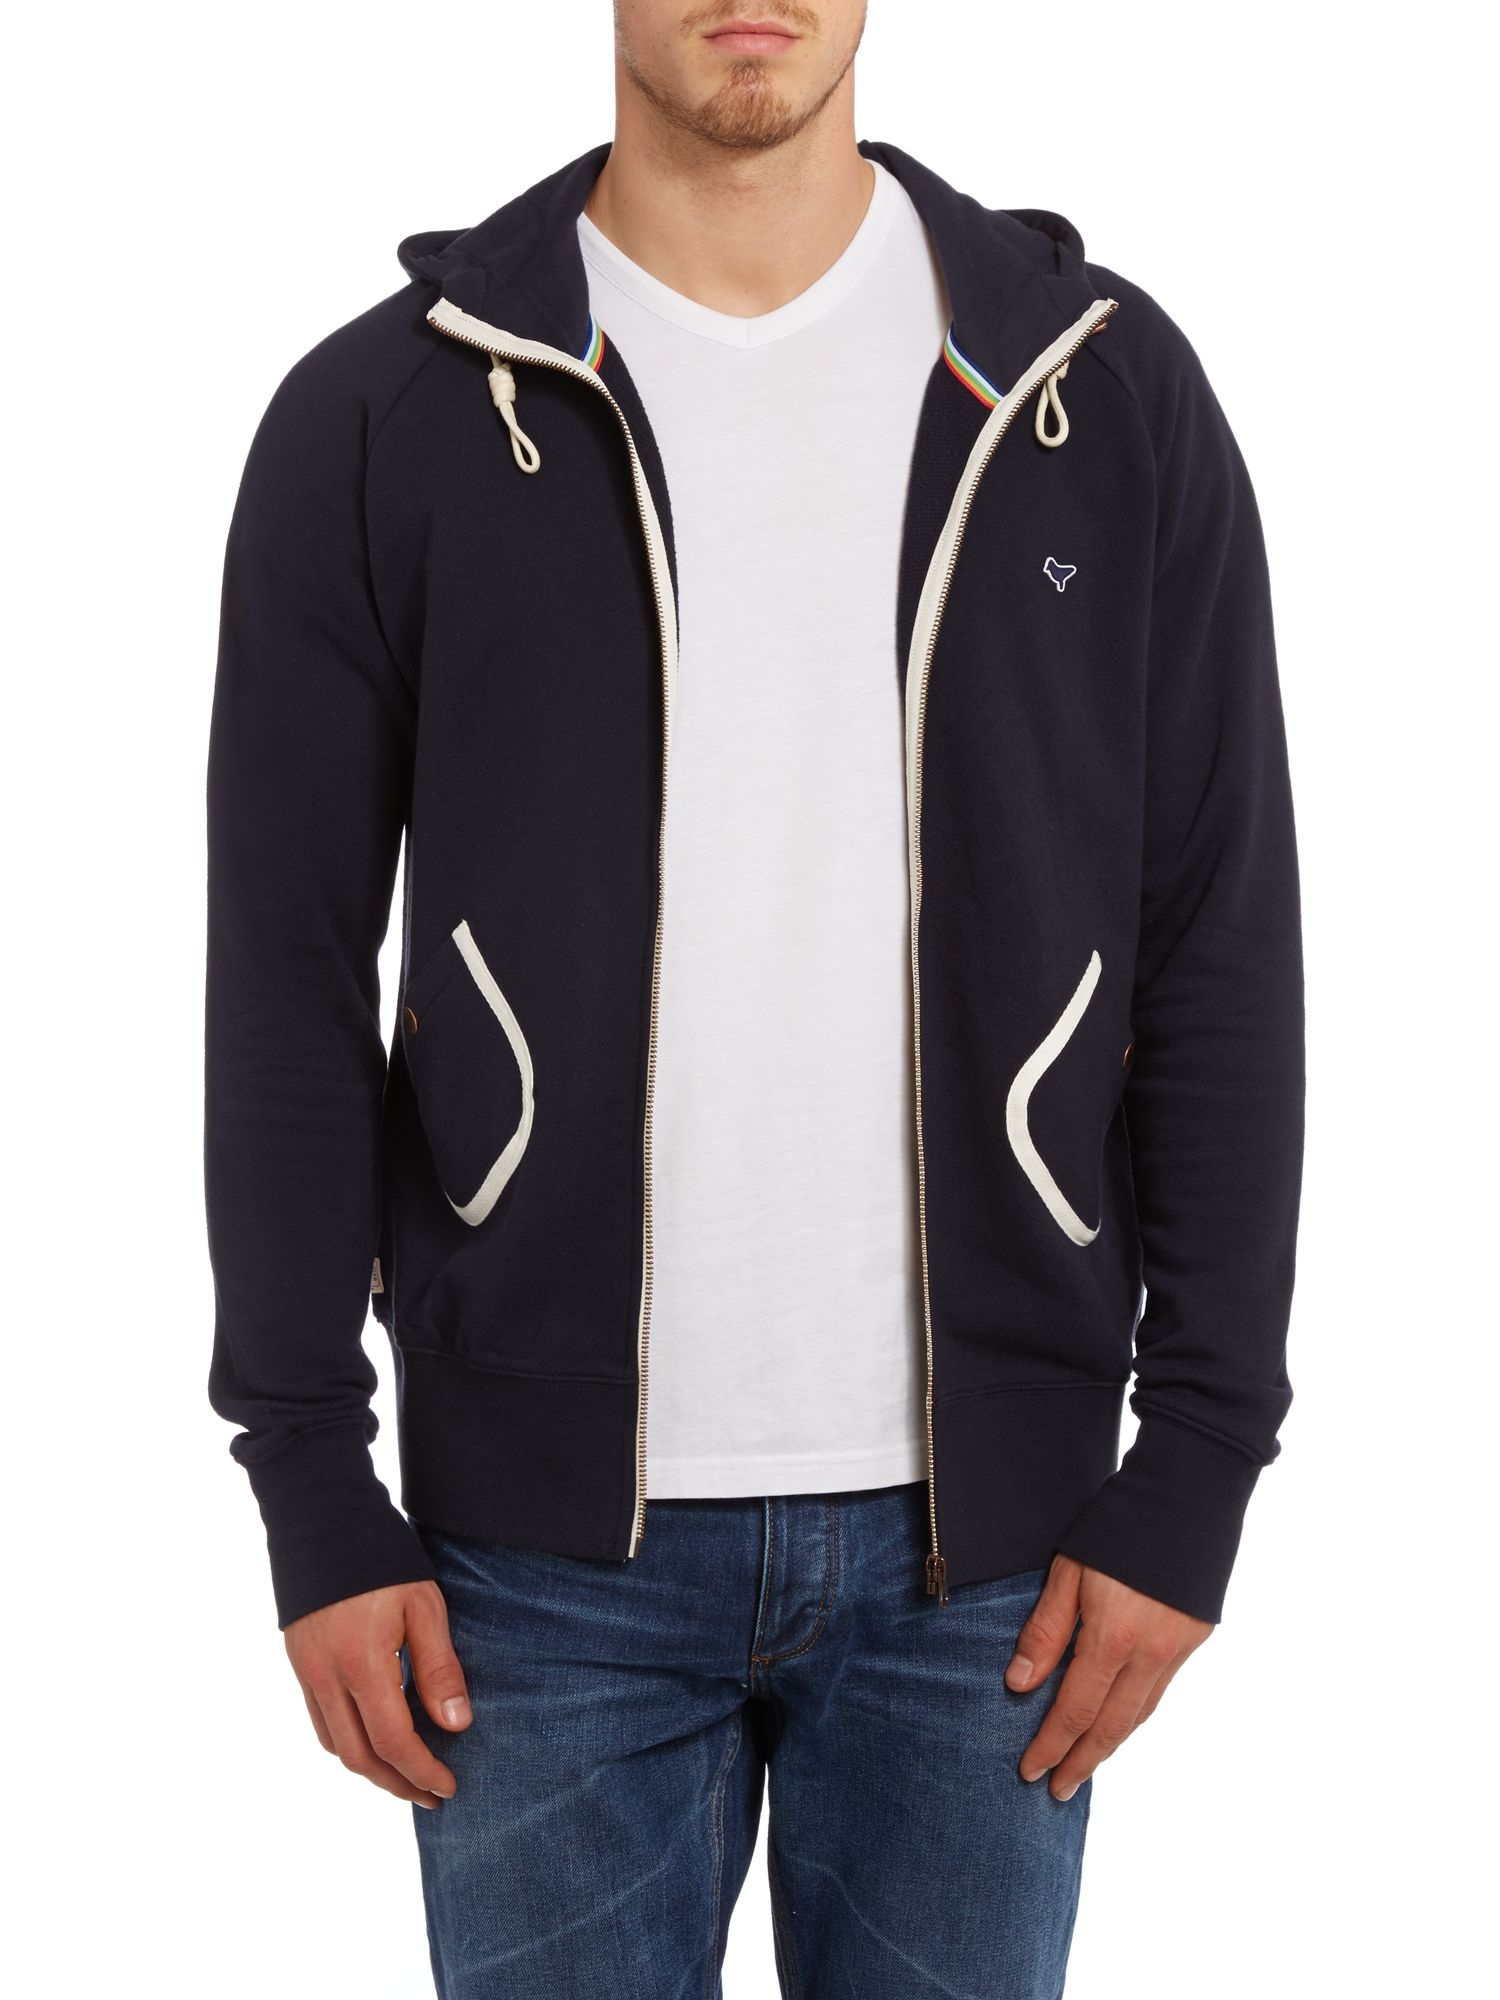 Two pocket zip up sweatshirt